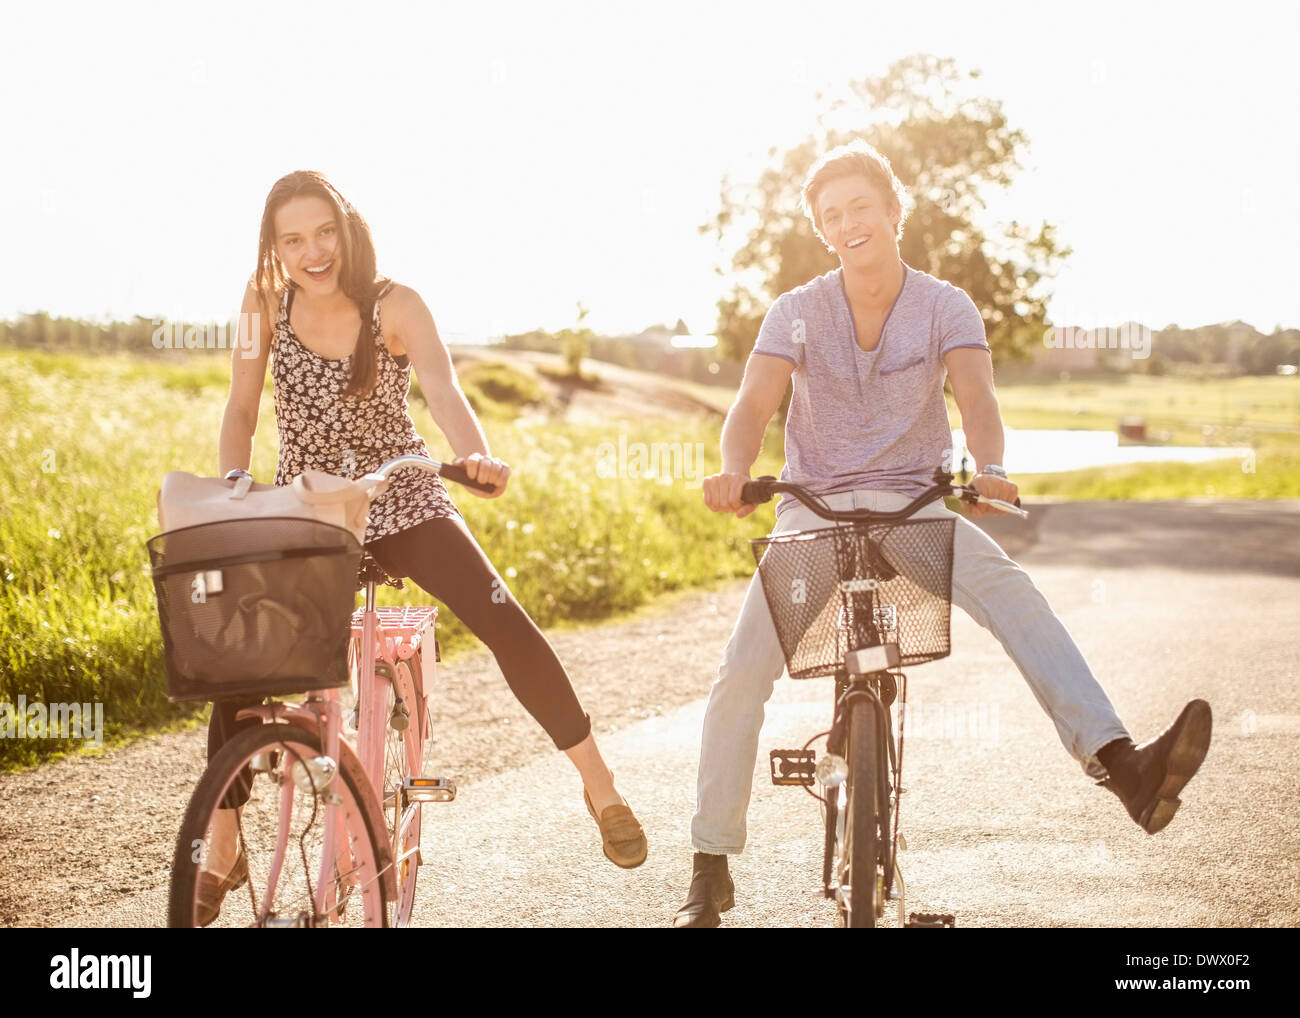 Portrait of happy young couple with legs apart cycling on country road - Stock Image